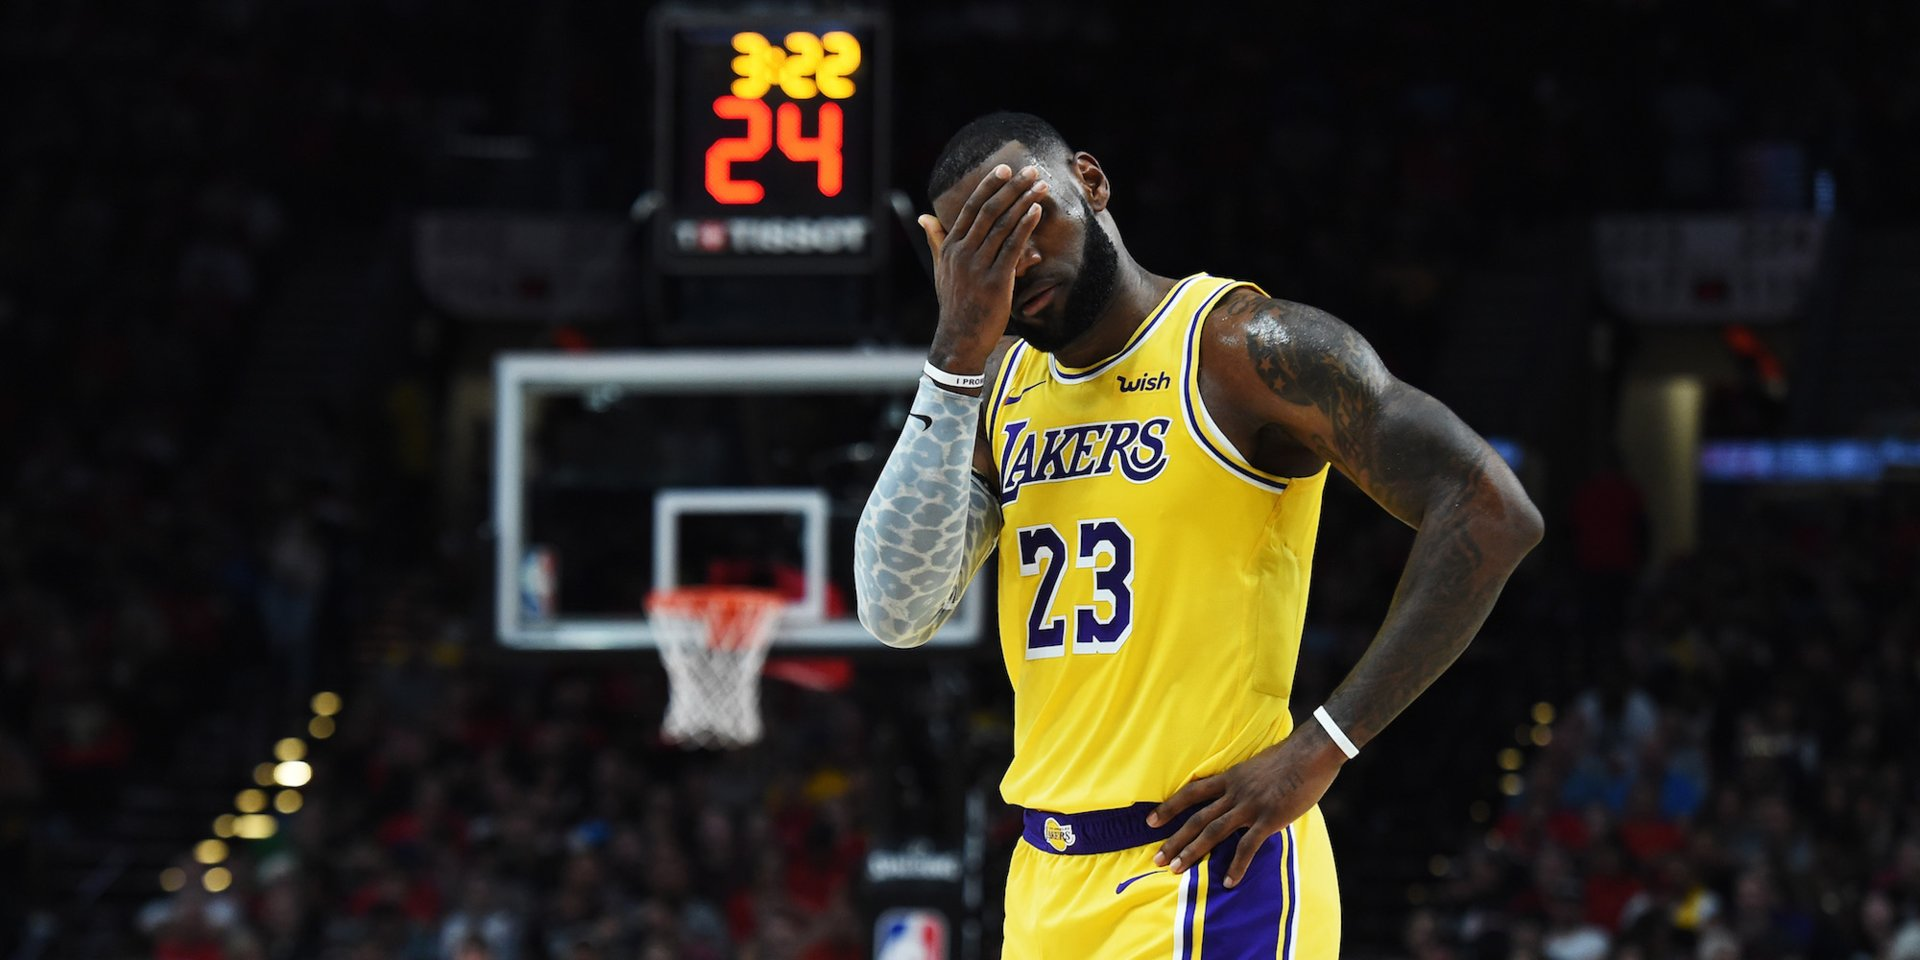 Offense & Forced Shots Under Luke Walton Reportedly 'Discouraged' LeBron James